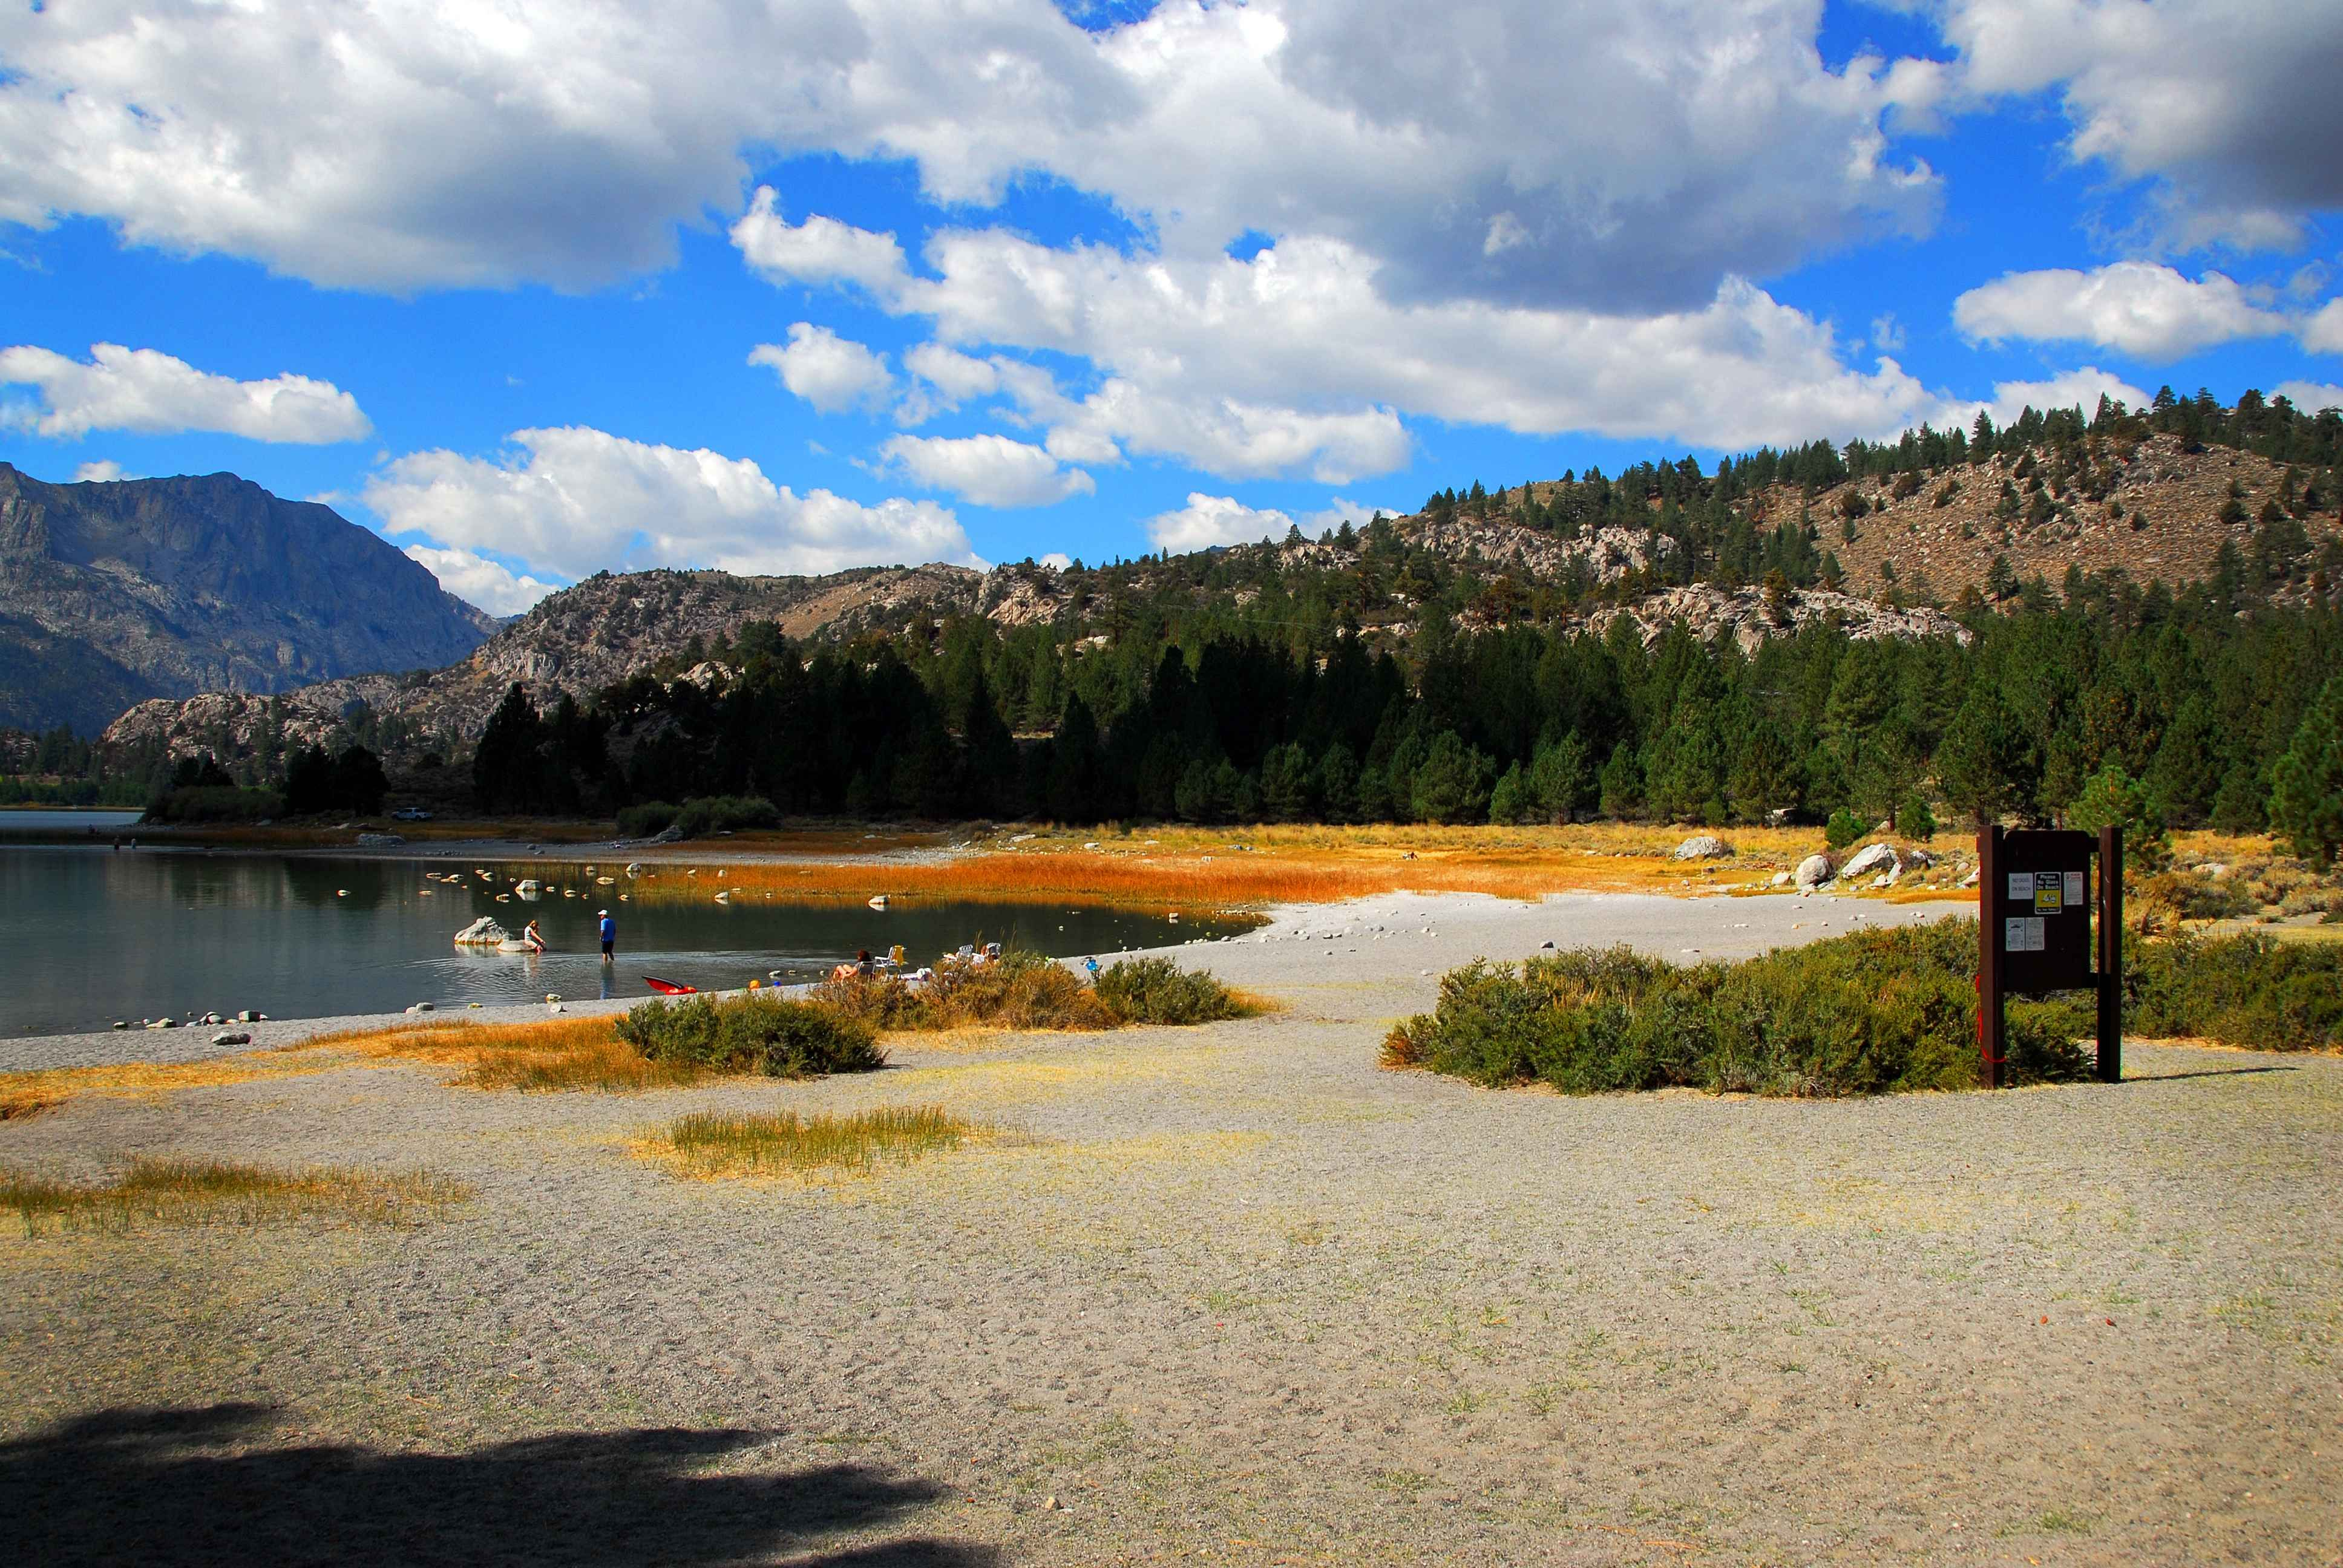 Oh ridge beach mammoth lakes camping guide campground